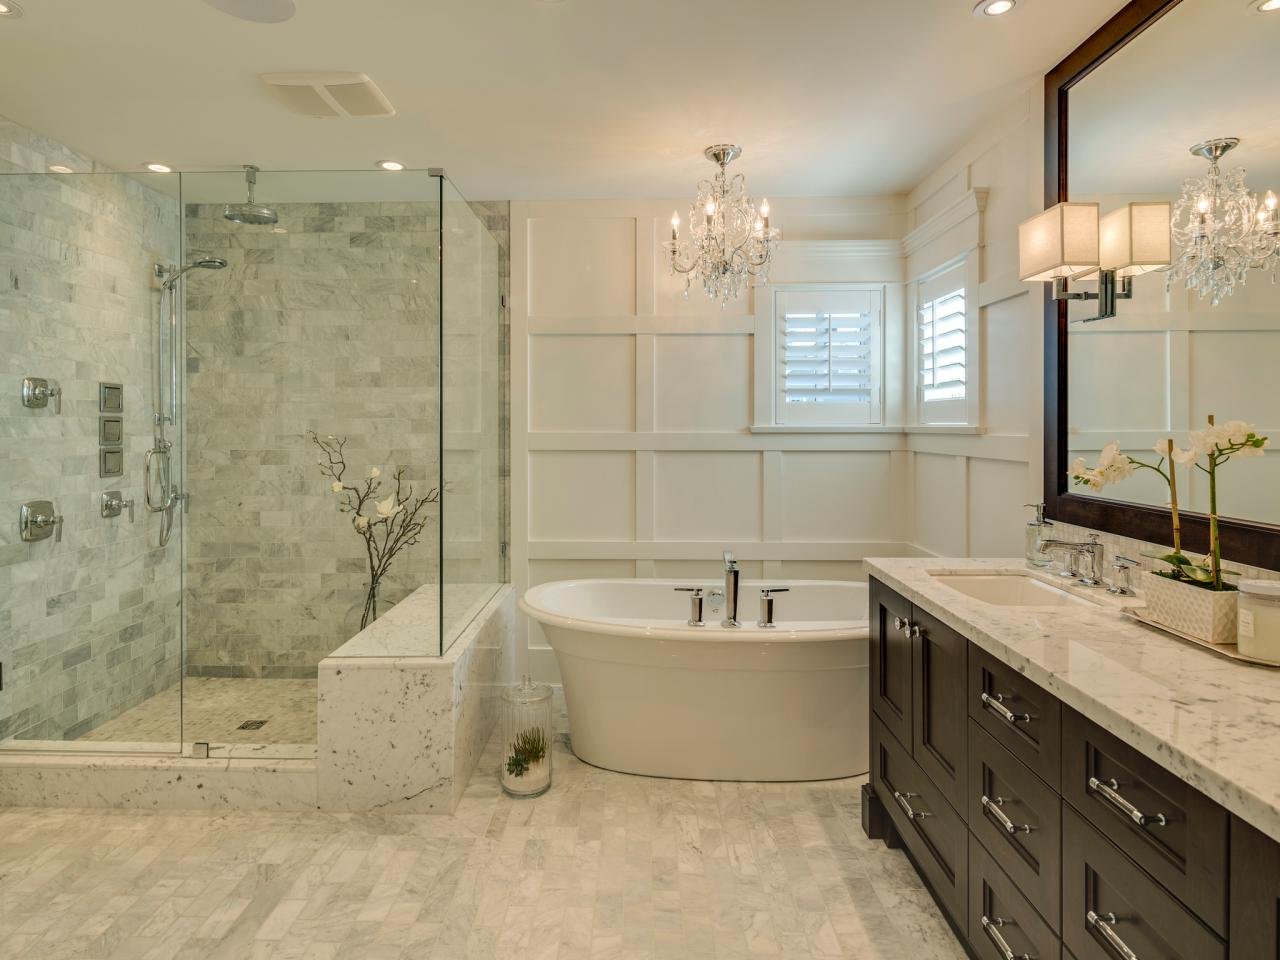 Master Bathroom Ideas Plus Master Bath Renovation Ideas Plus Best Master Bathrooms Master Bathroom Ideas Which Can Inspire You Inspiration Home Magazine